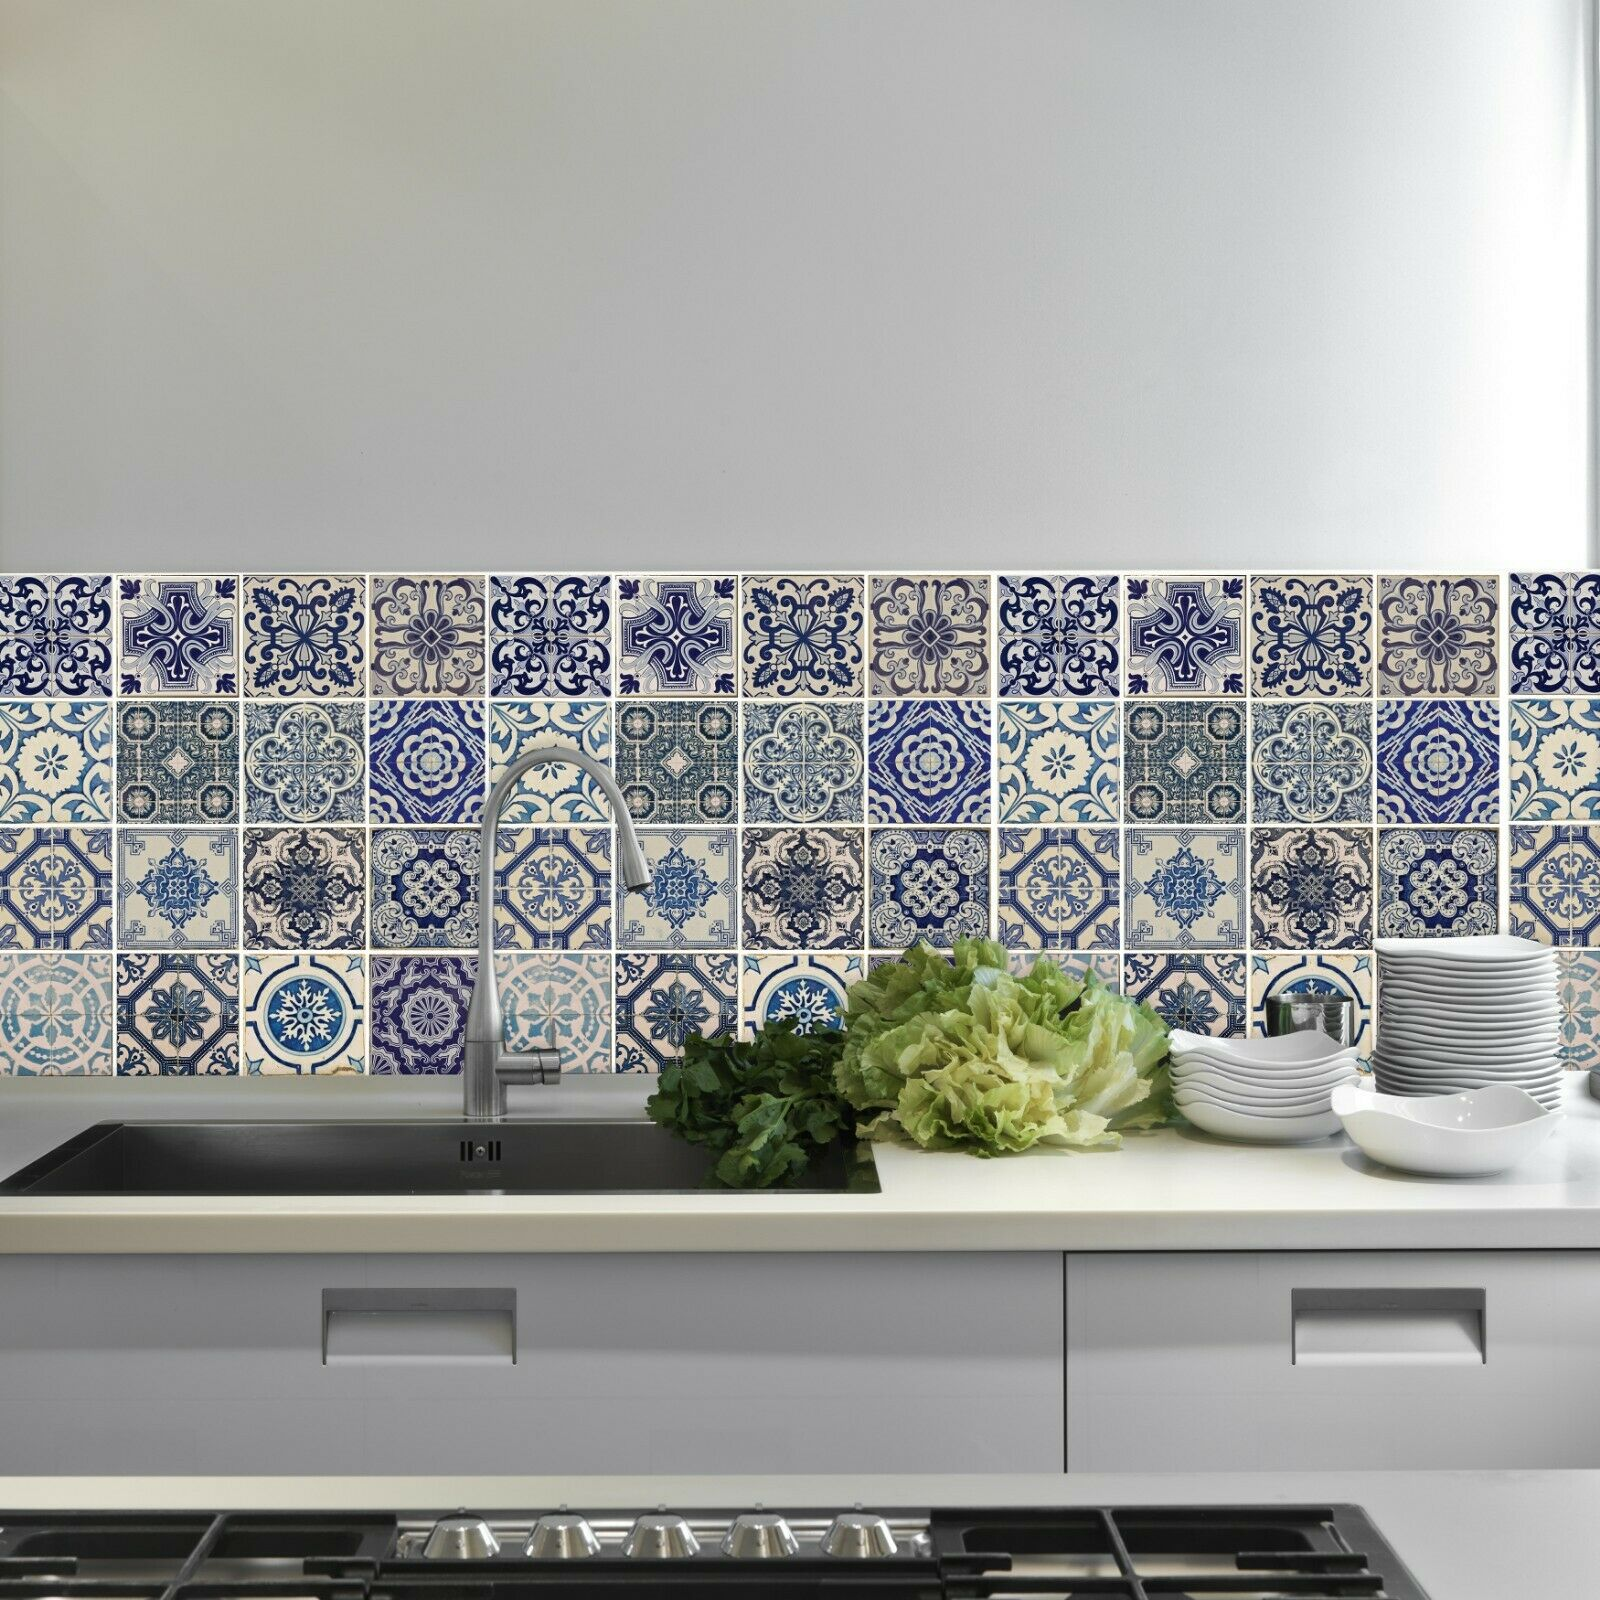 Green tiles  Self-Adhesive Decal New Cabinet Makeover Wall FurniturePattern DIY